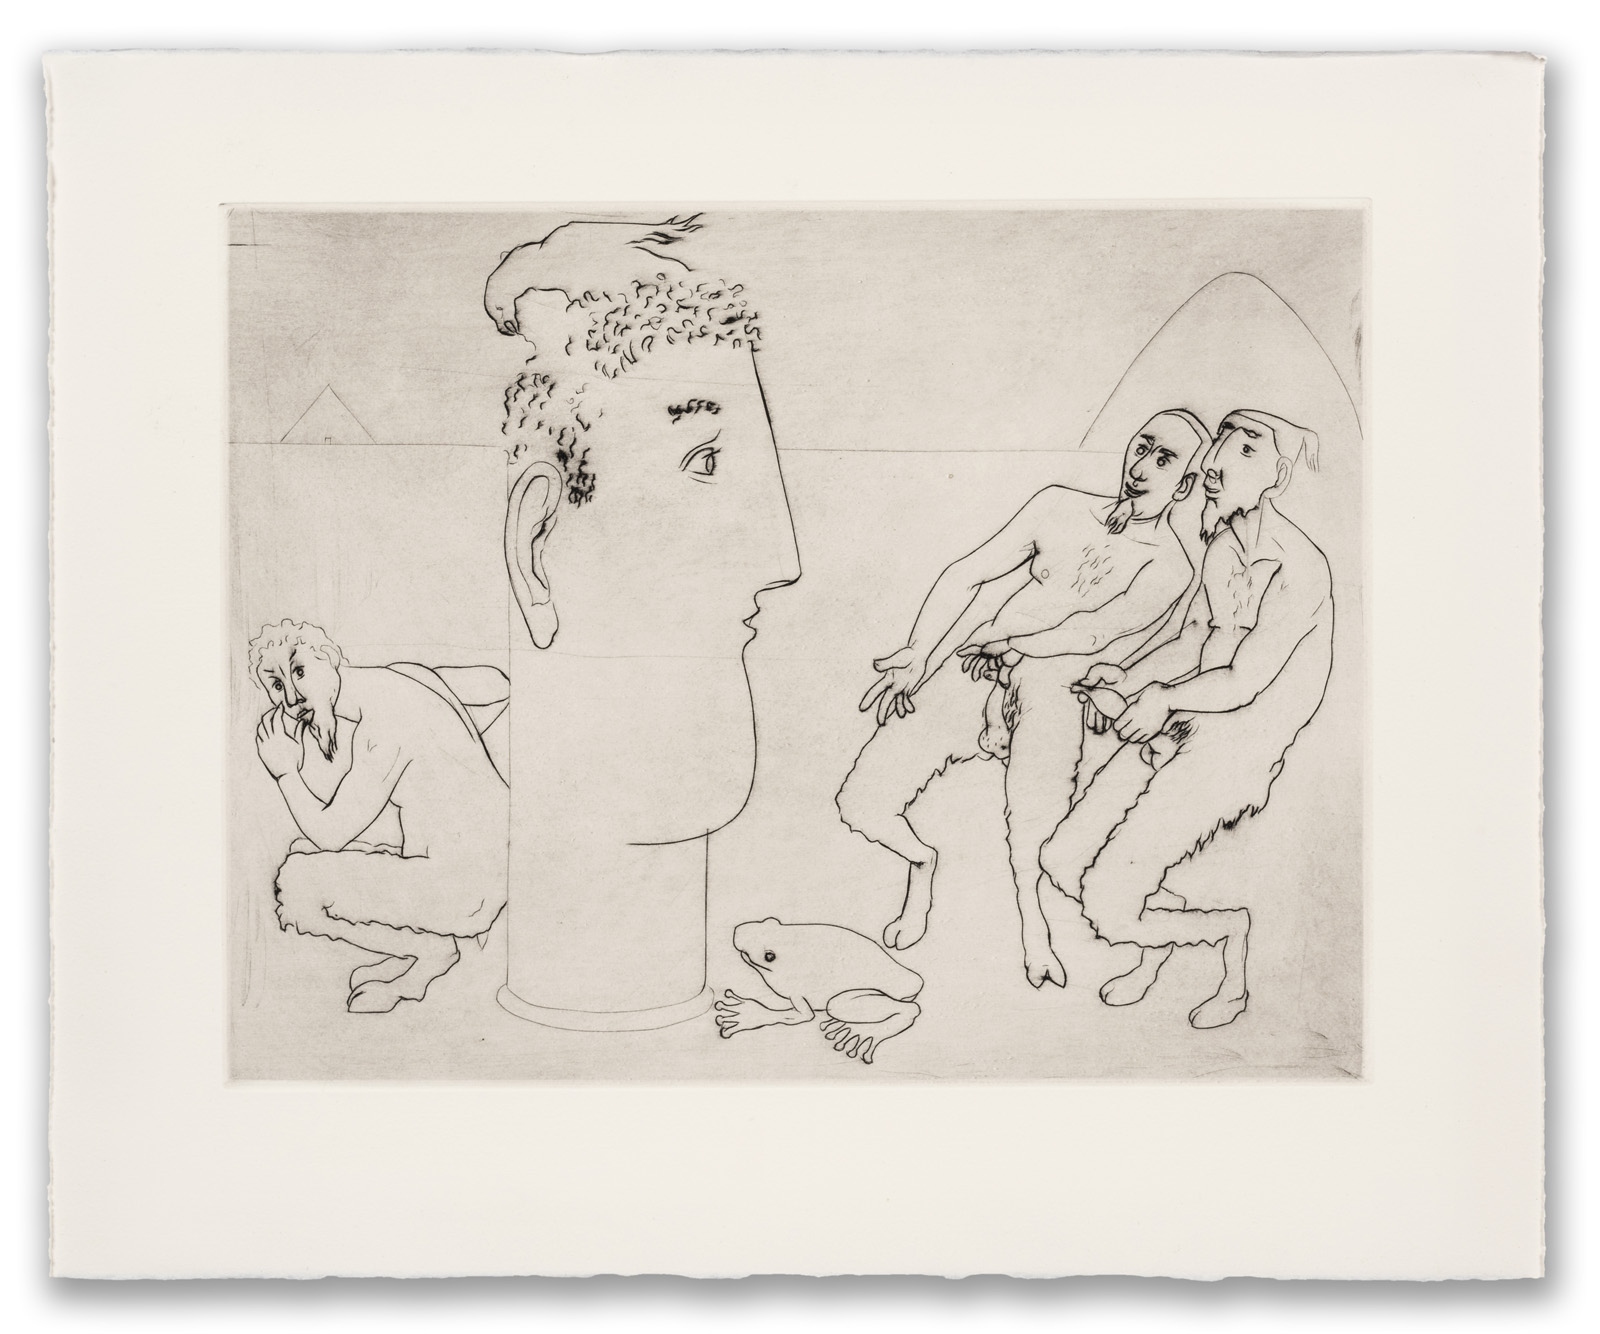 Francis West, (British 1936-2015), Satyrs Pissing on Apollo, c.1999 (2017 Edition).